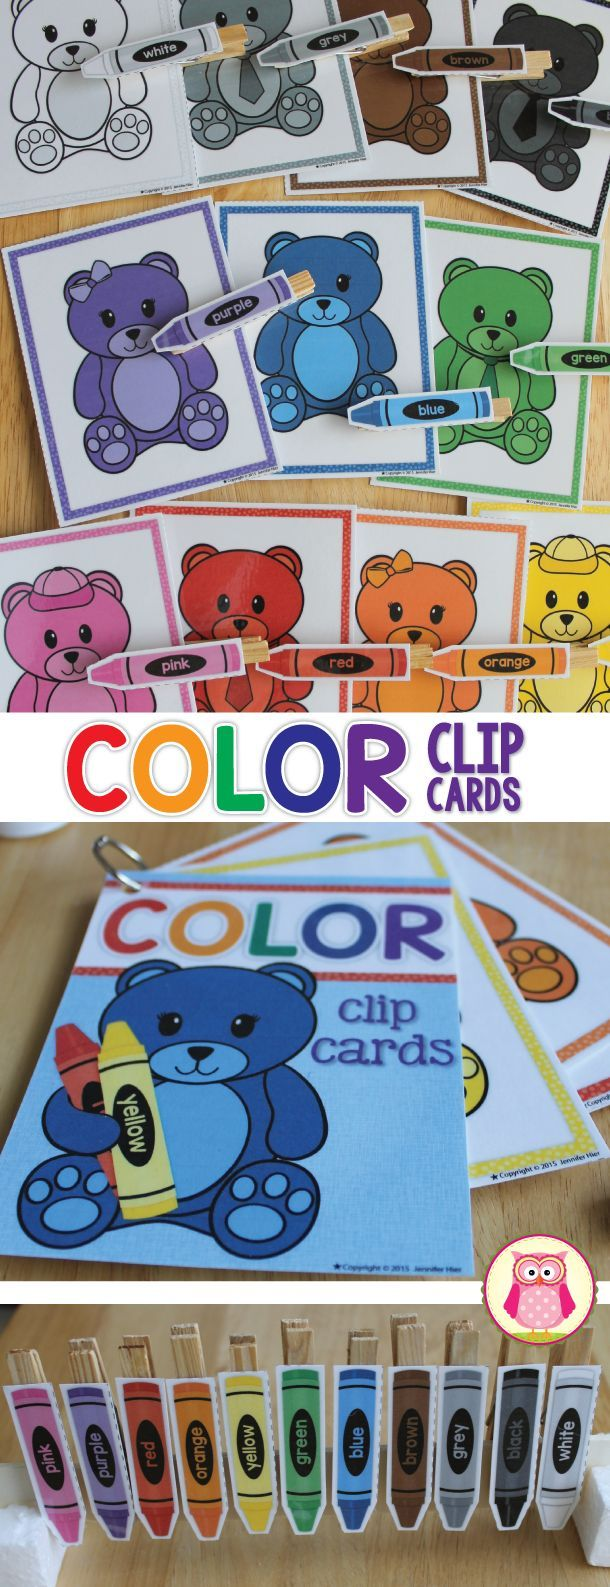 color matching bears bear color match clip cards for preschool and ece - Color Activity For Preschool